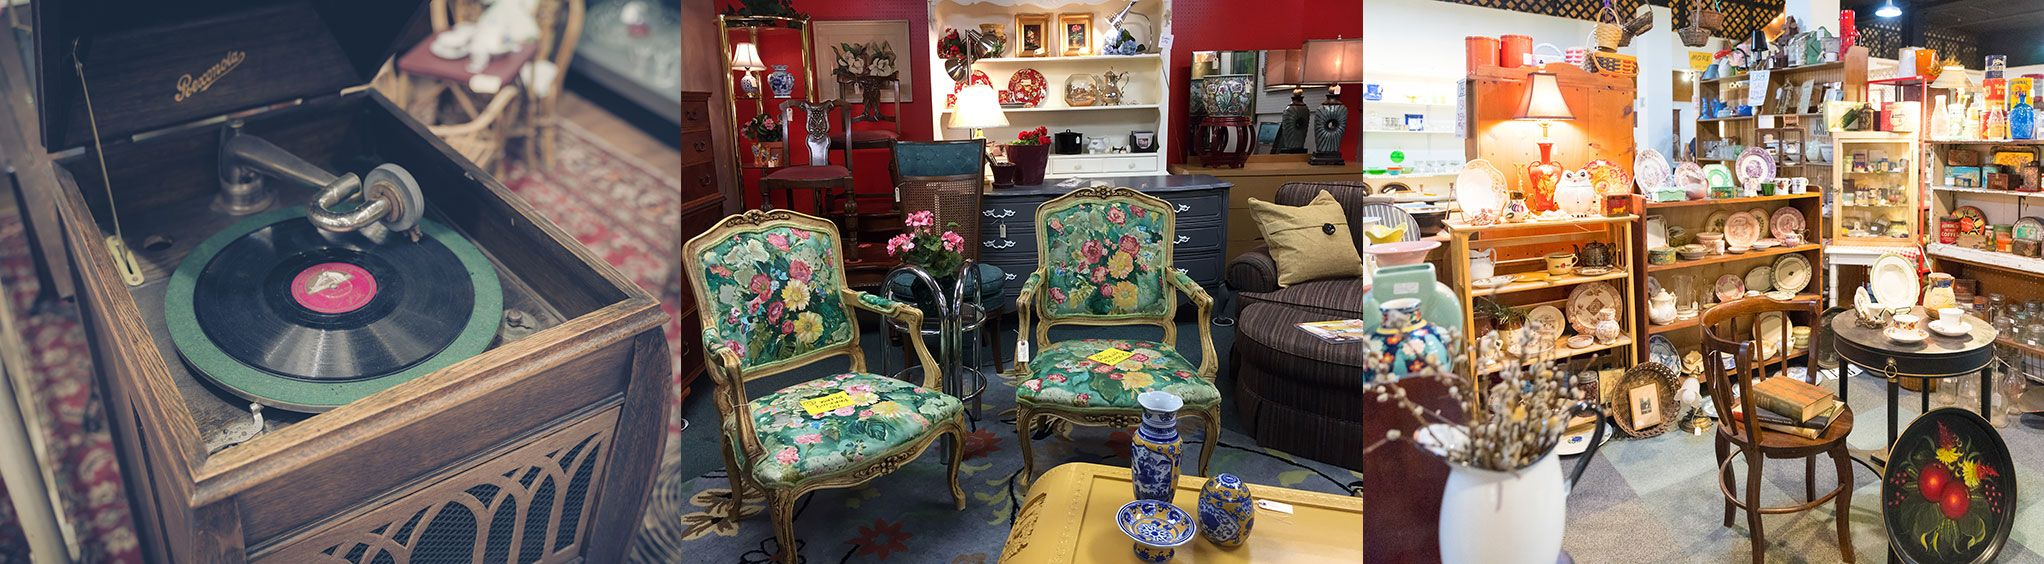 Southern Charm Antiques in Savannah, GA